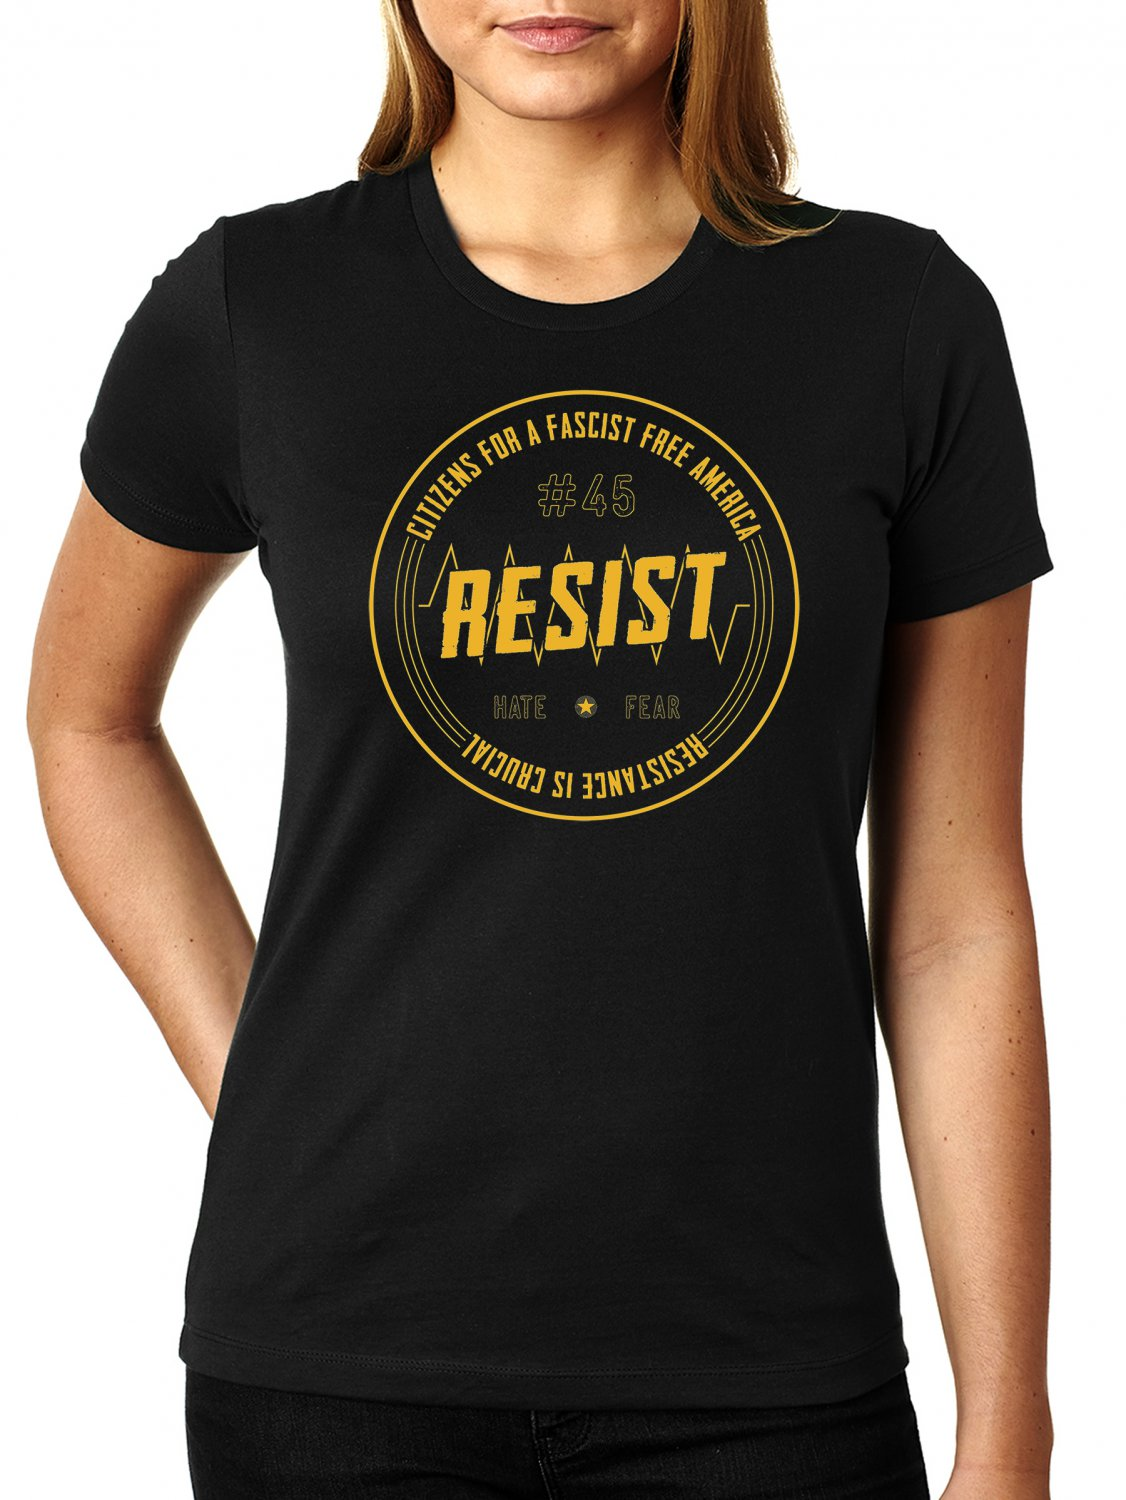 Citizens For A Fascist Free America- RESISTANCE IS CRUCIAL Cheeto Orange Ink - Women's SIZE 2XL